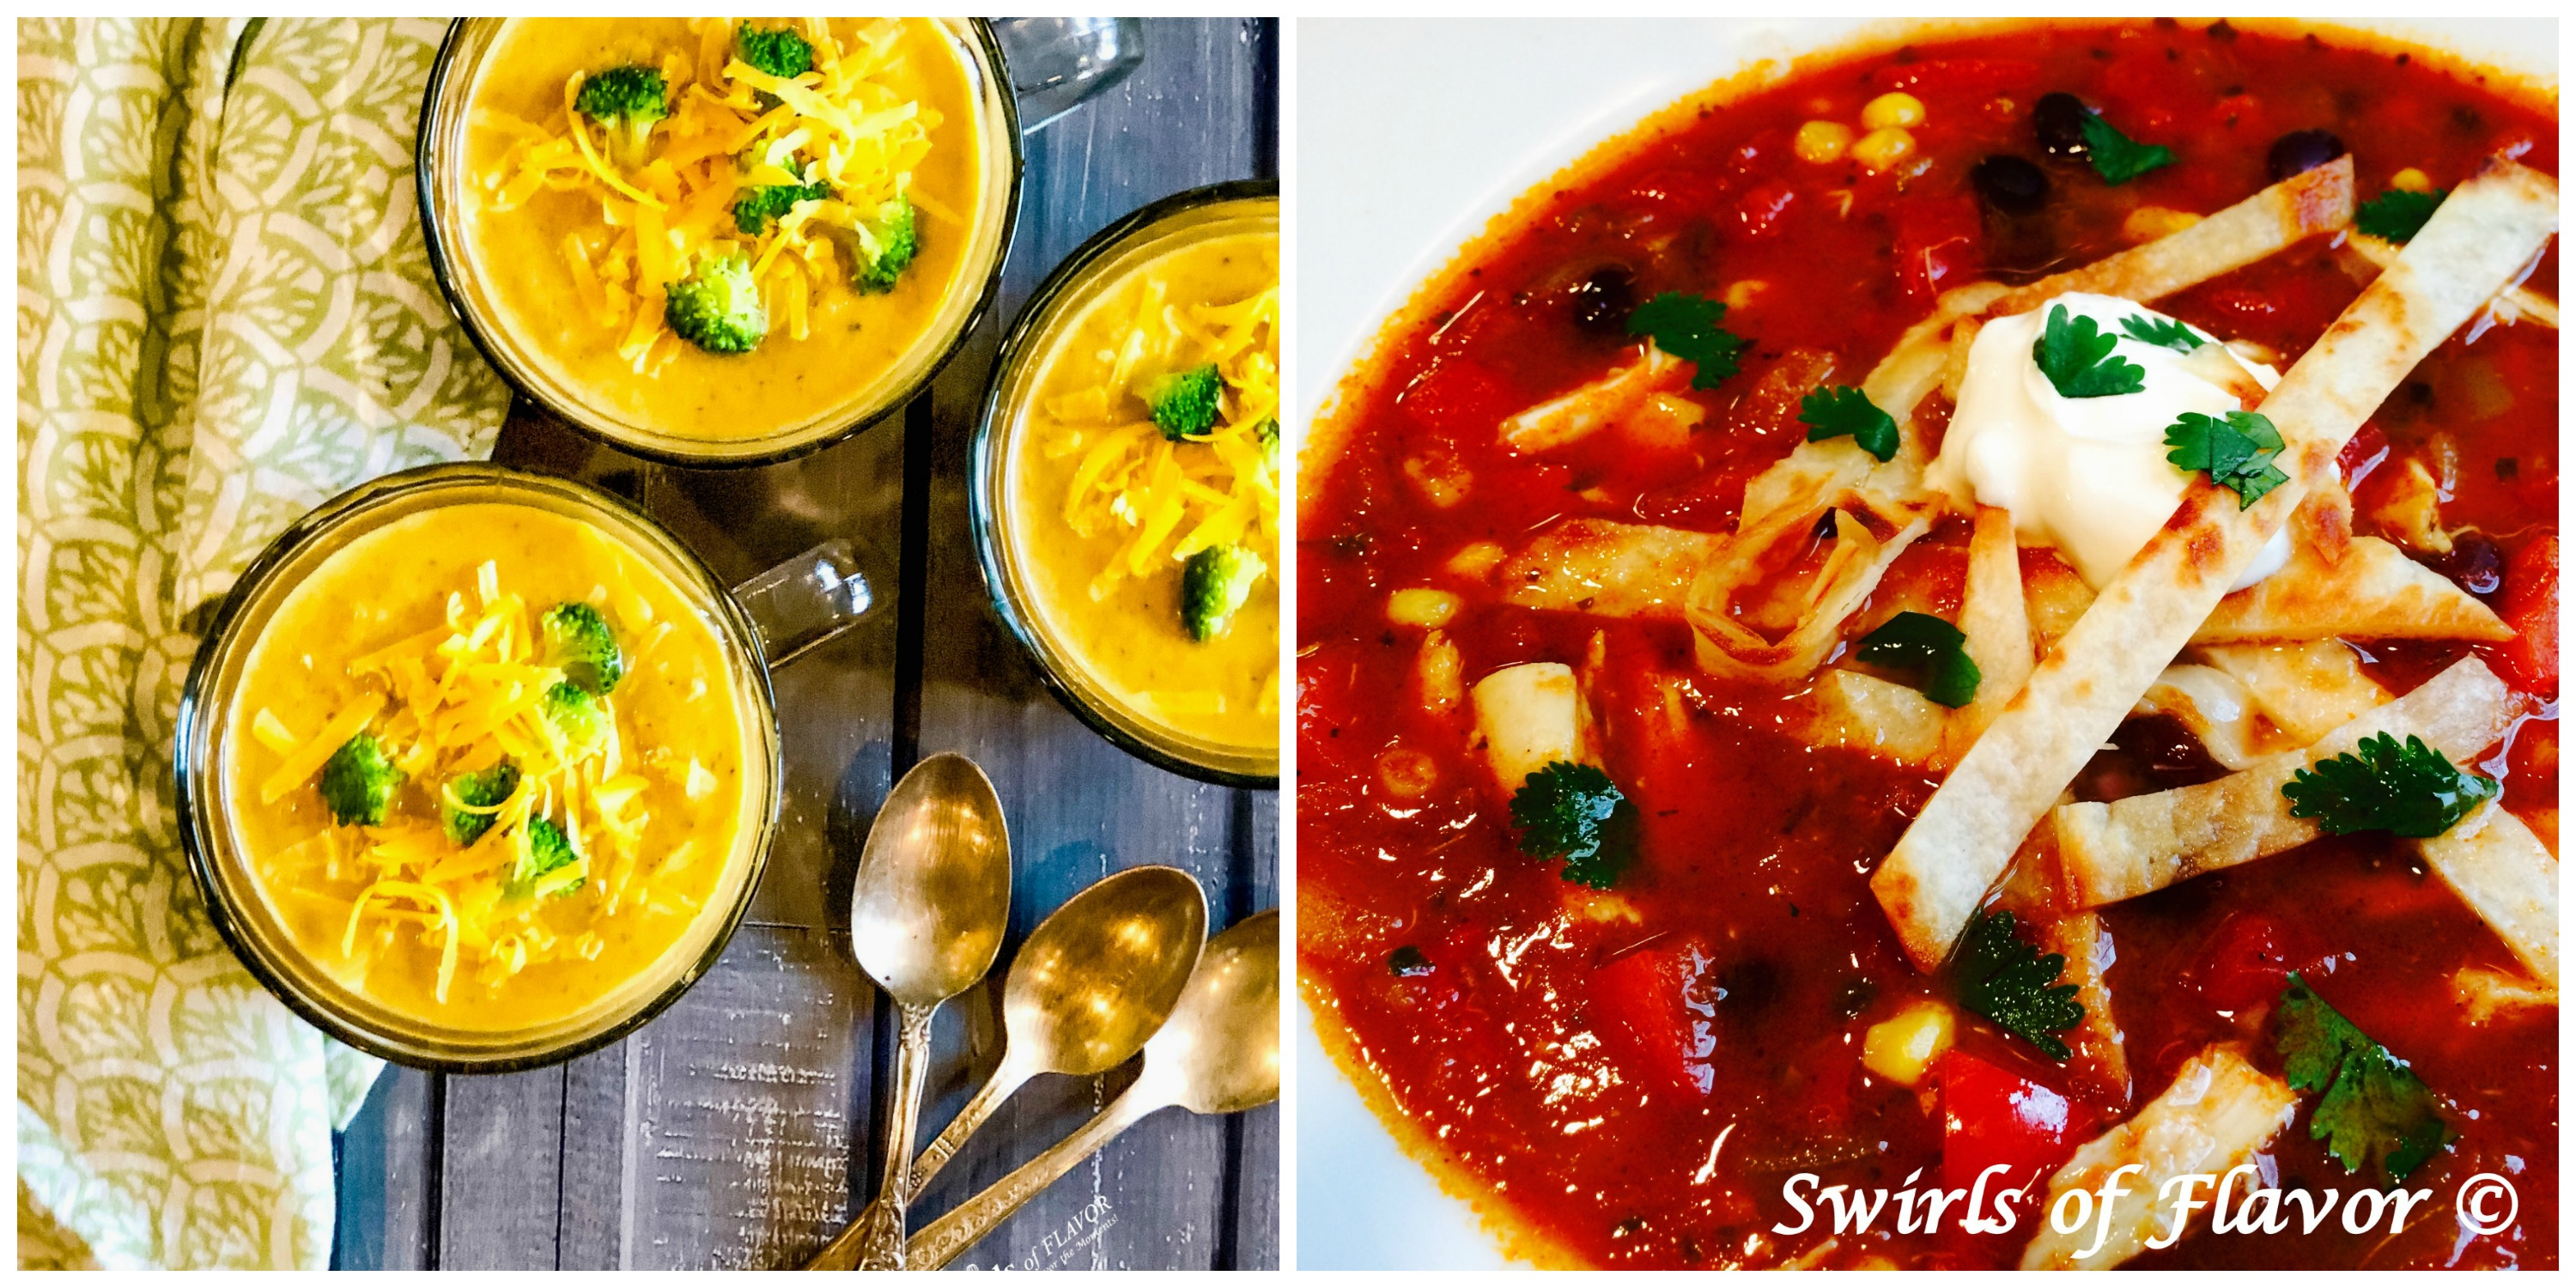 Broccoli Cheddar Soup and Chicken Tortilla Soup